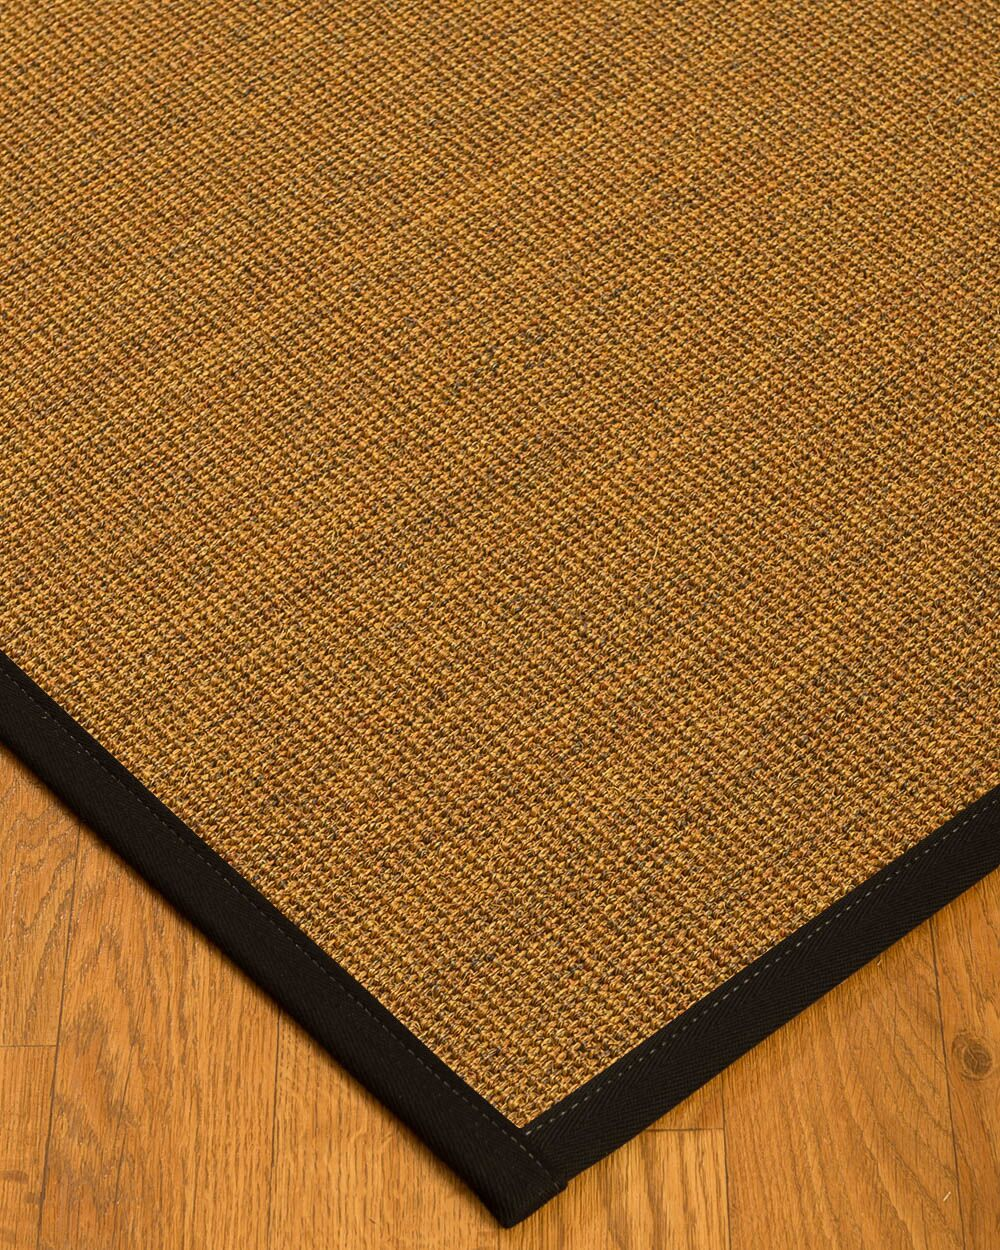 Halsted Hand-Woven Beige Area Rug Rug Size: Rectangle 4' x 6'